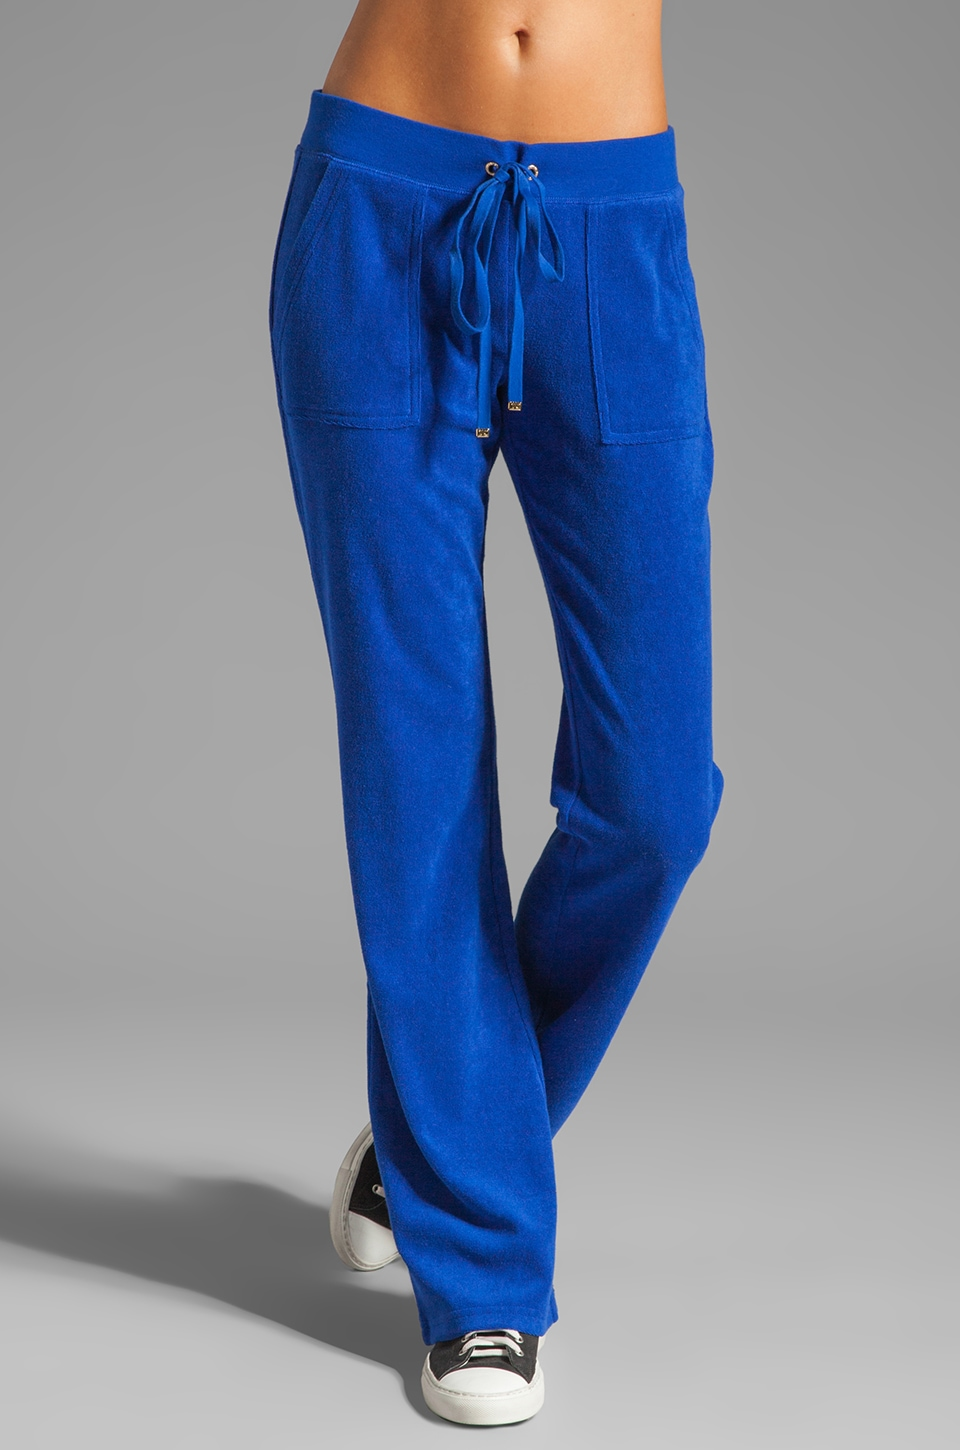 Juicy Couture Terry Snap Pocket Pant in Seaside